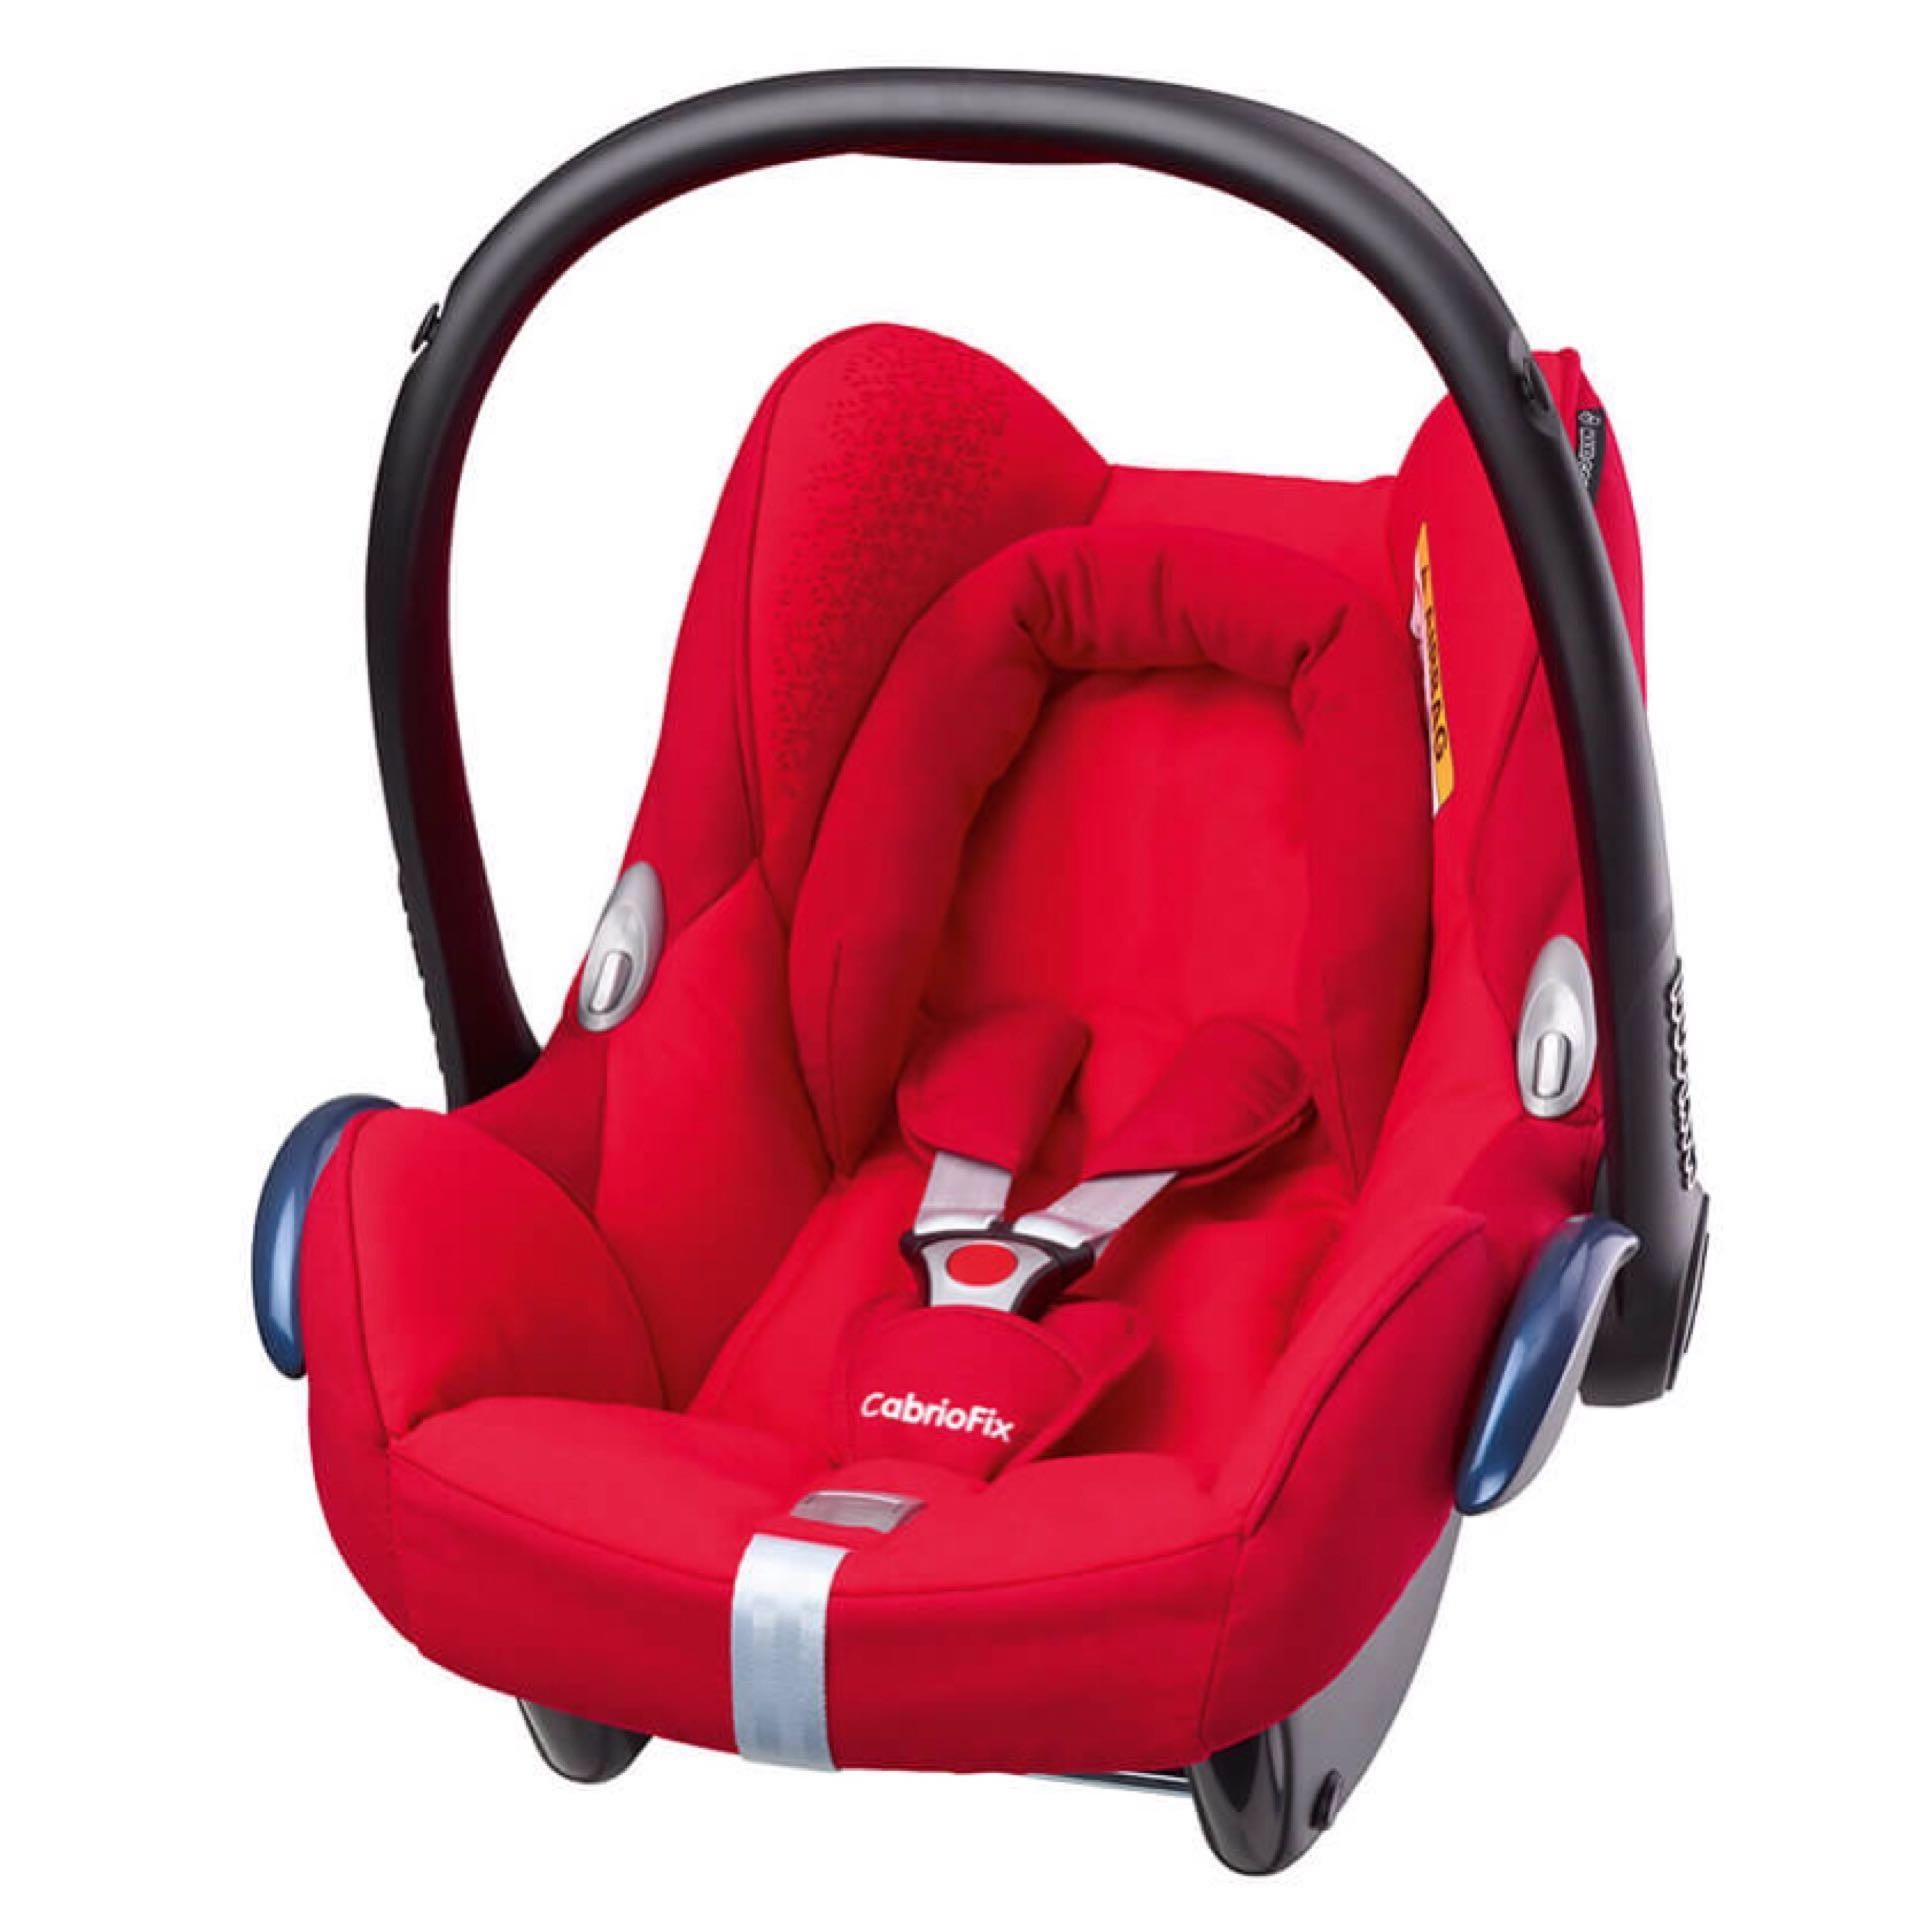 Maxi Cosi Baby Car Seat How To Install Maxi Cosi Cabriofix Carrier Baby Car Seat Newborn Till 13kg